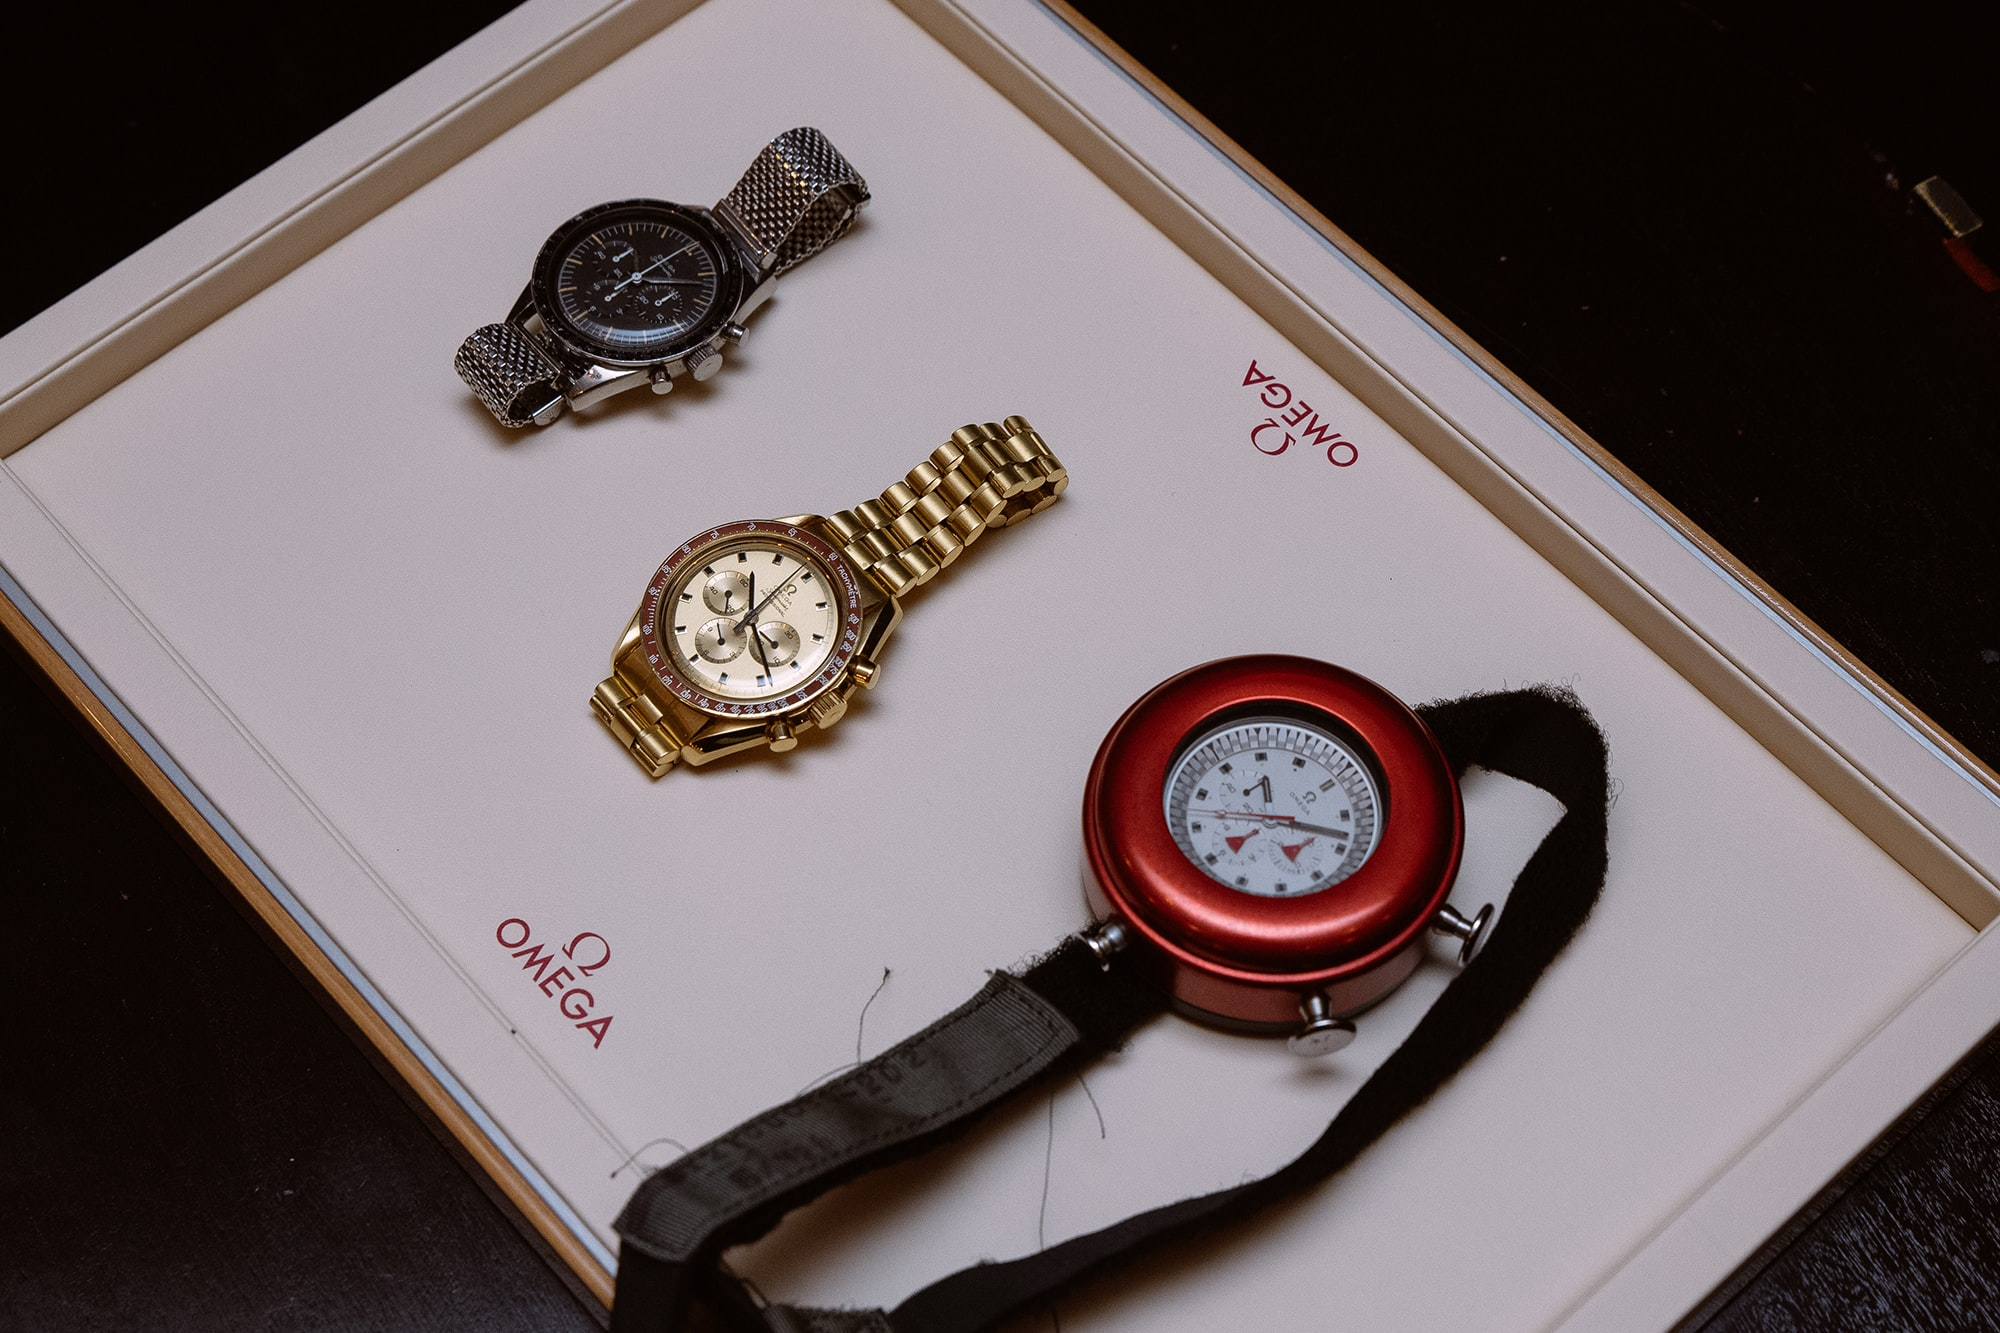 Photo Report: HODINKEE And Omega Celebrate The 60th Anniversary Of The Speedmaster Photo Report: HODINKEE And Omega Celebrate The 60th Anniversary Of The Speedmaster  20170221 OmegaSpeedmaster60th 003